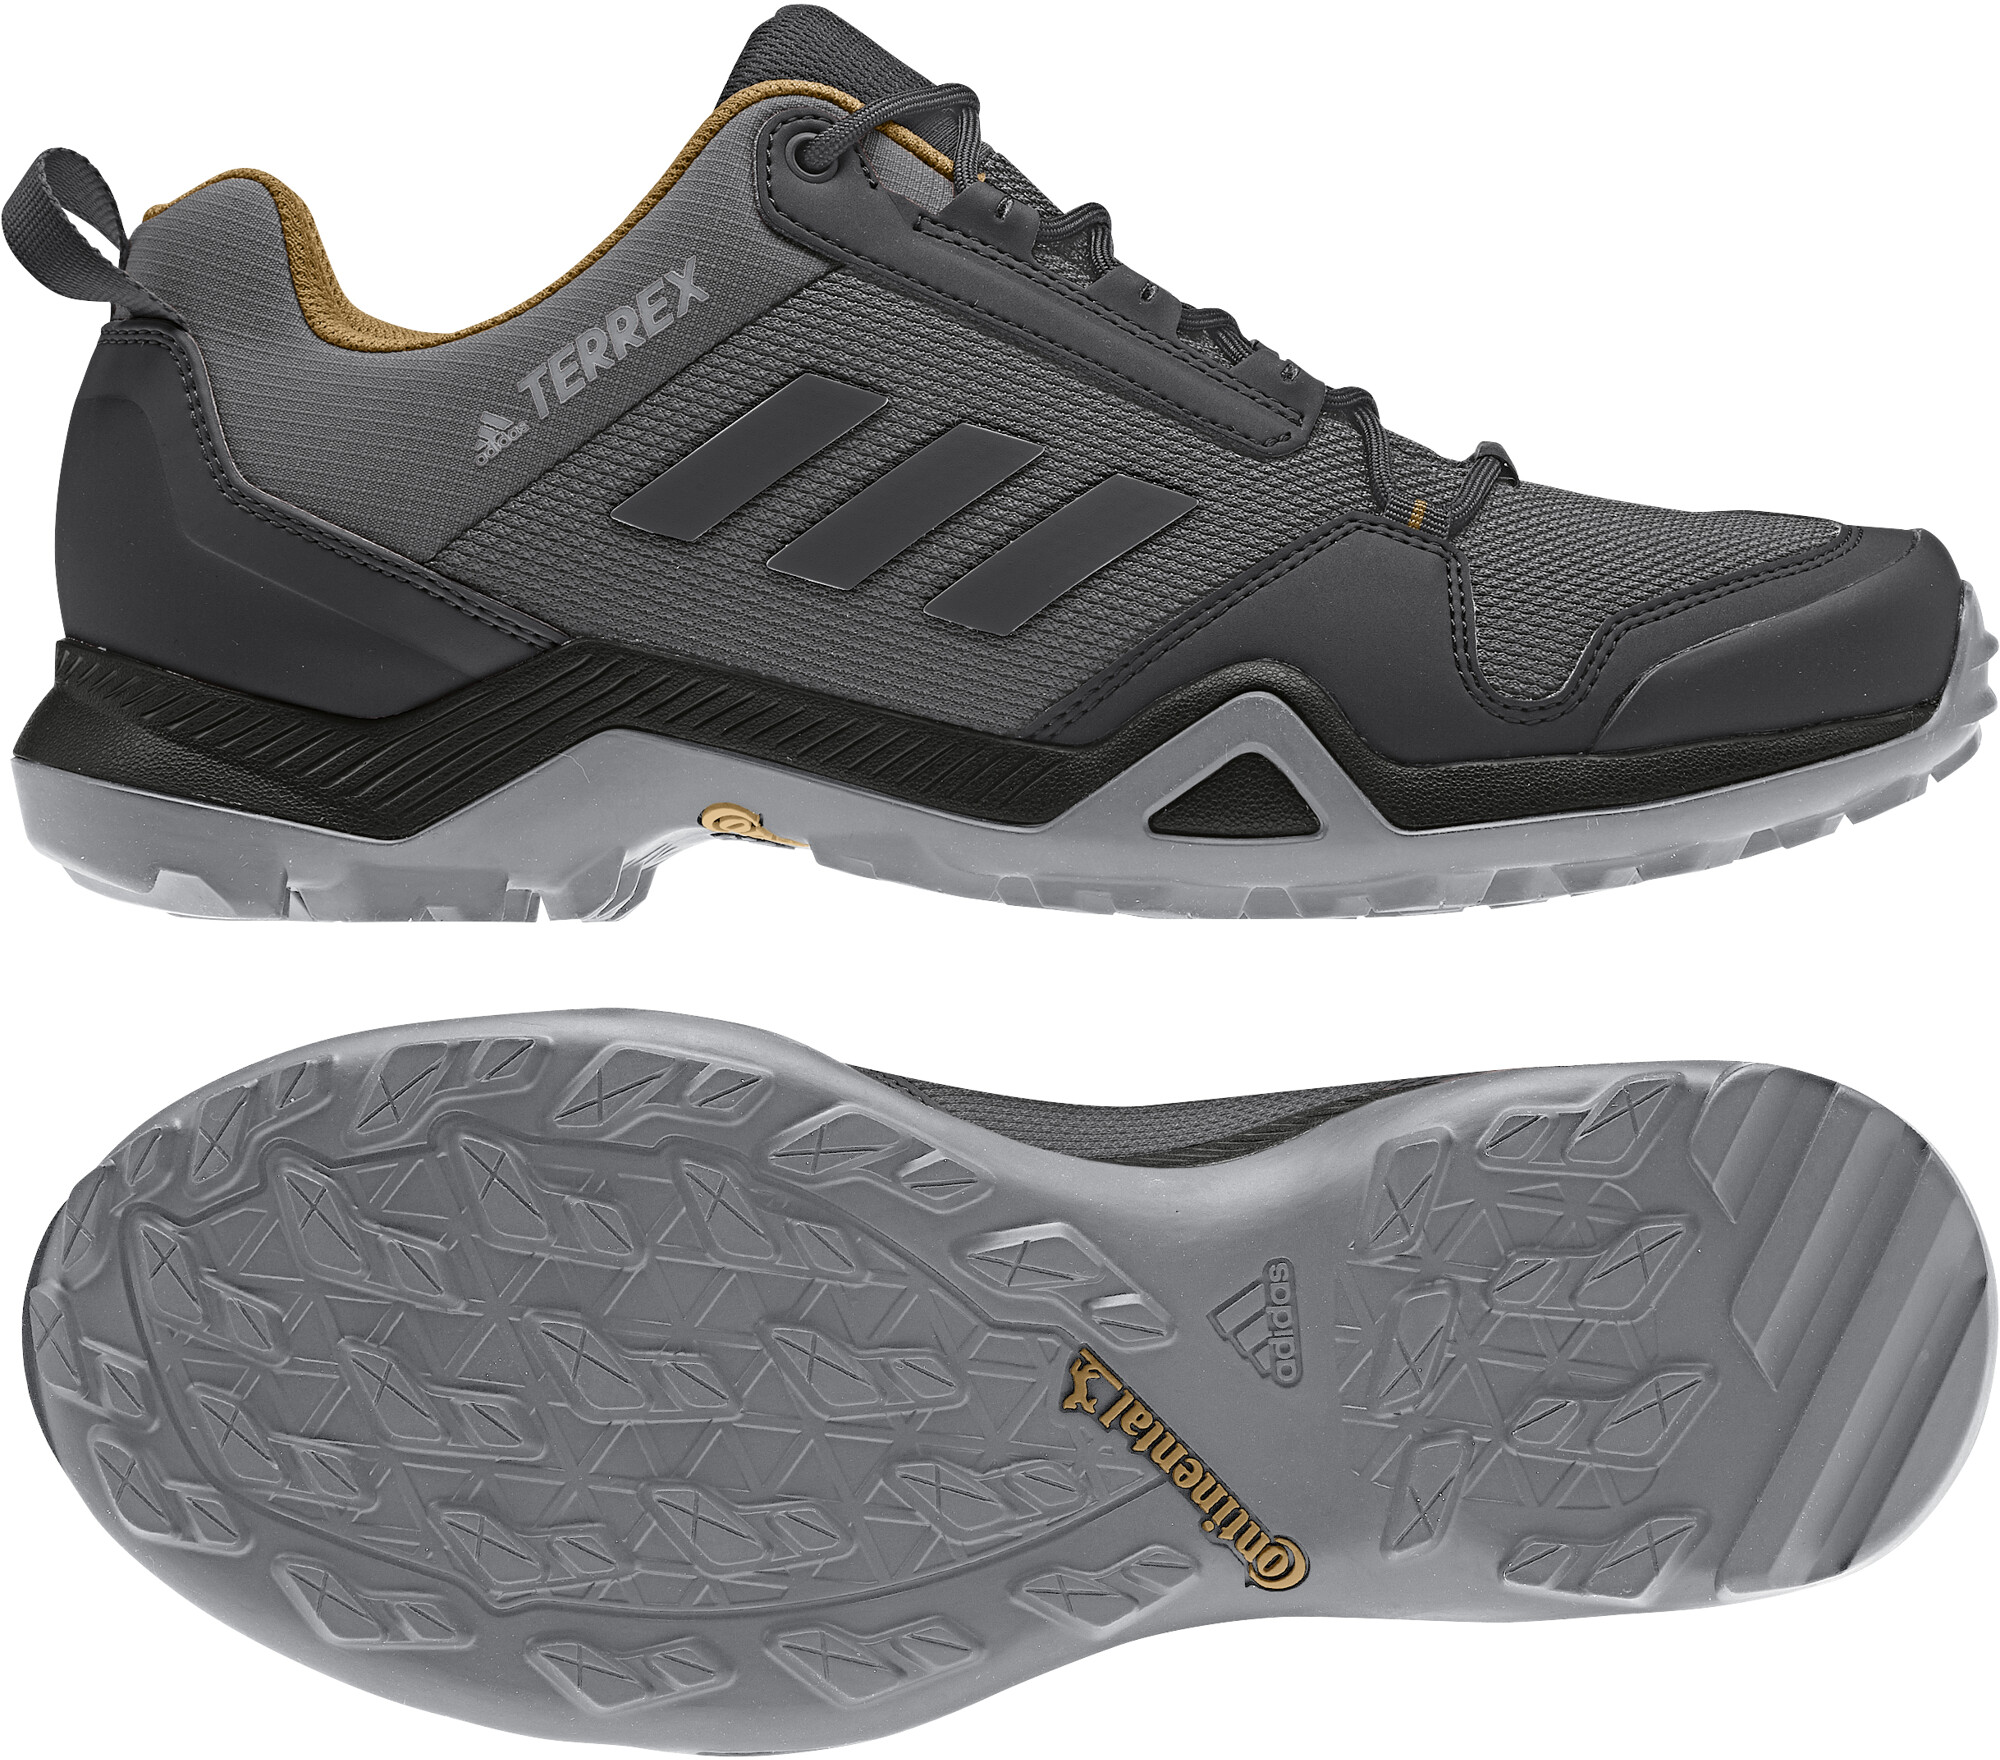 outlet store 24b52 4675e adidas TERREX AX3 - Chaussures Homme - gris